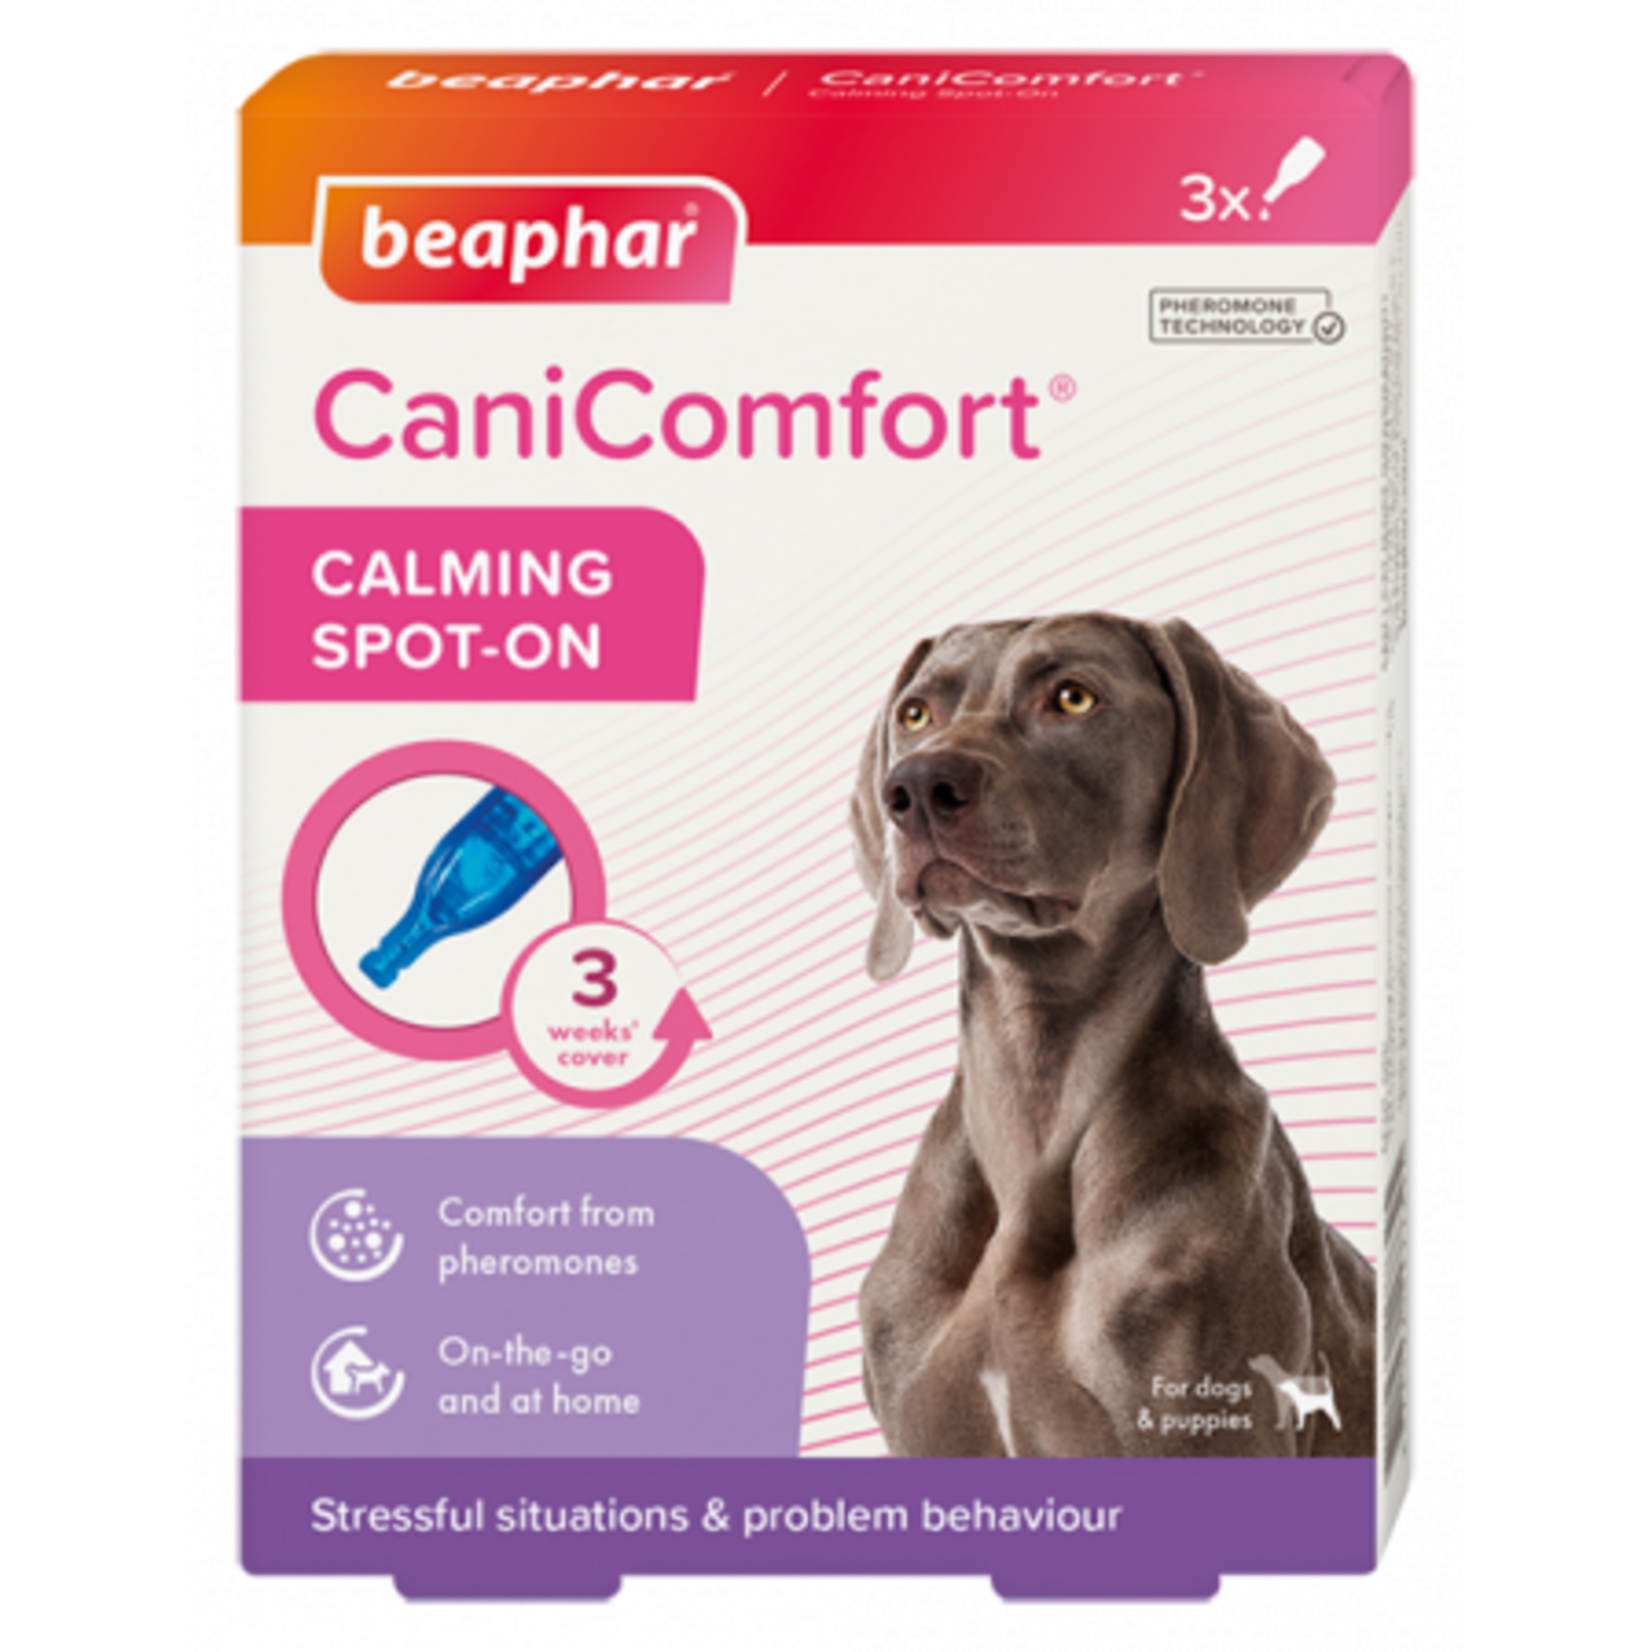 Beaphar CaniComfort Calming Spot-On with Dog Appeasing Pheromones, 3 pack